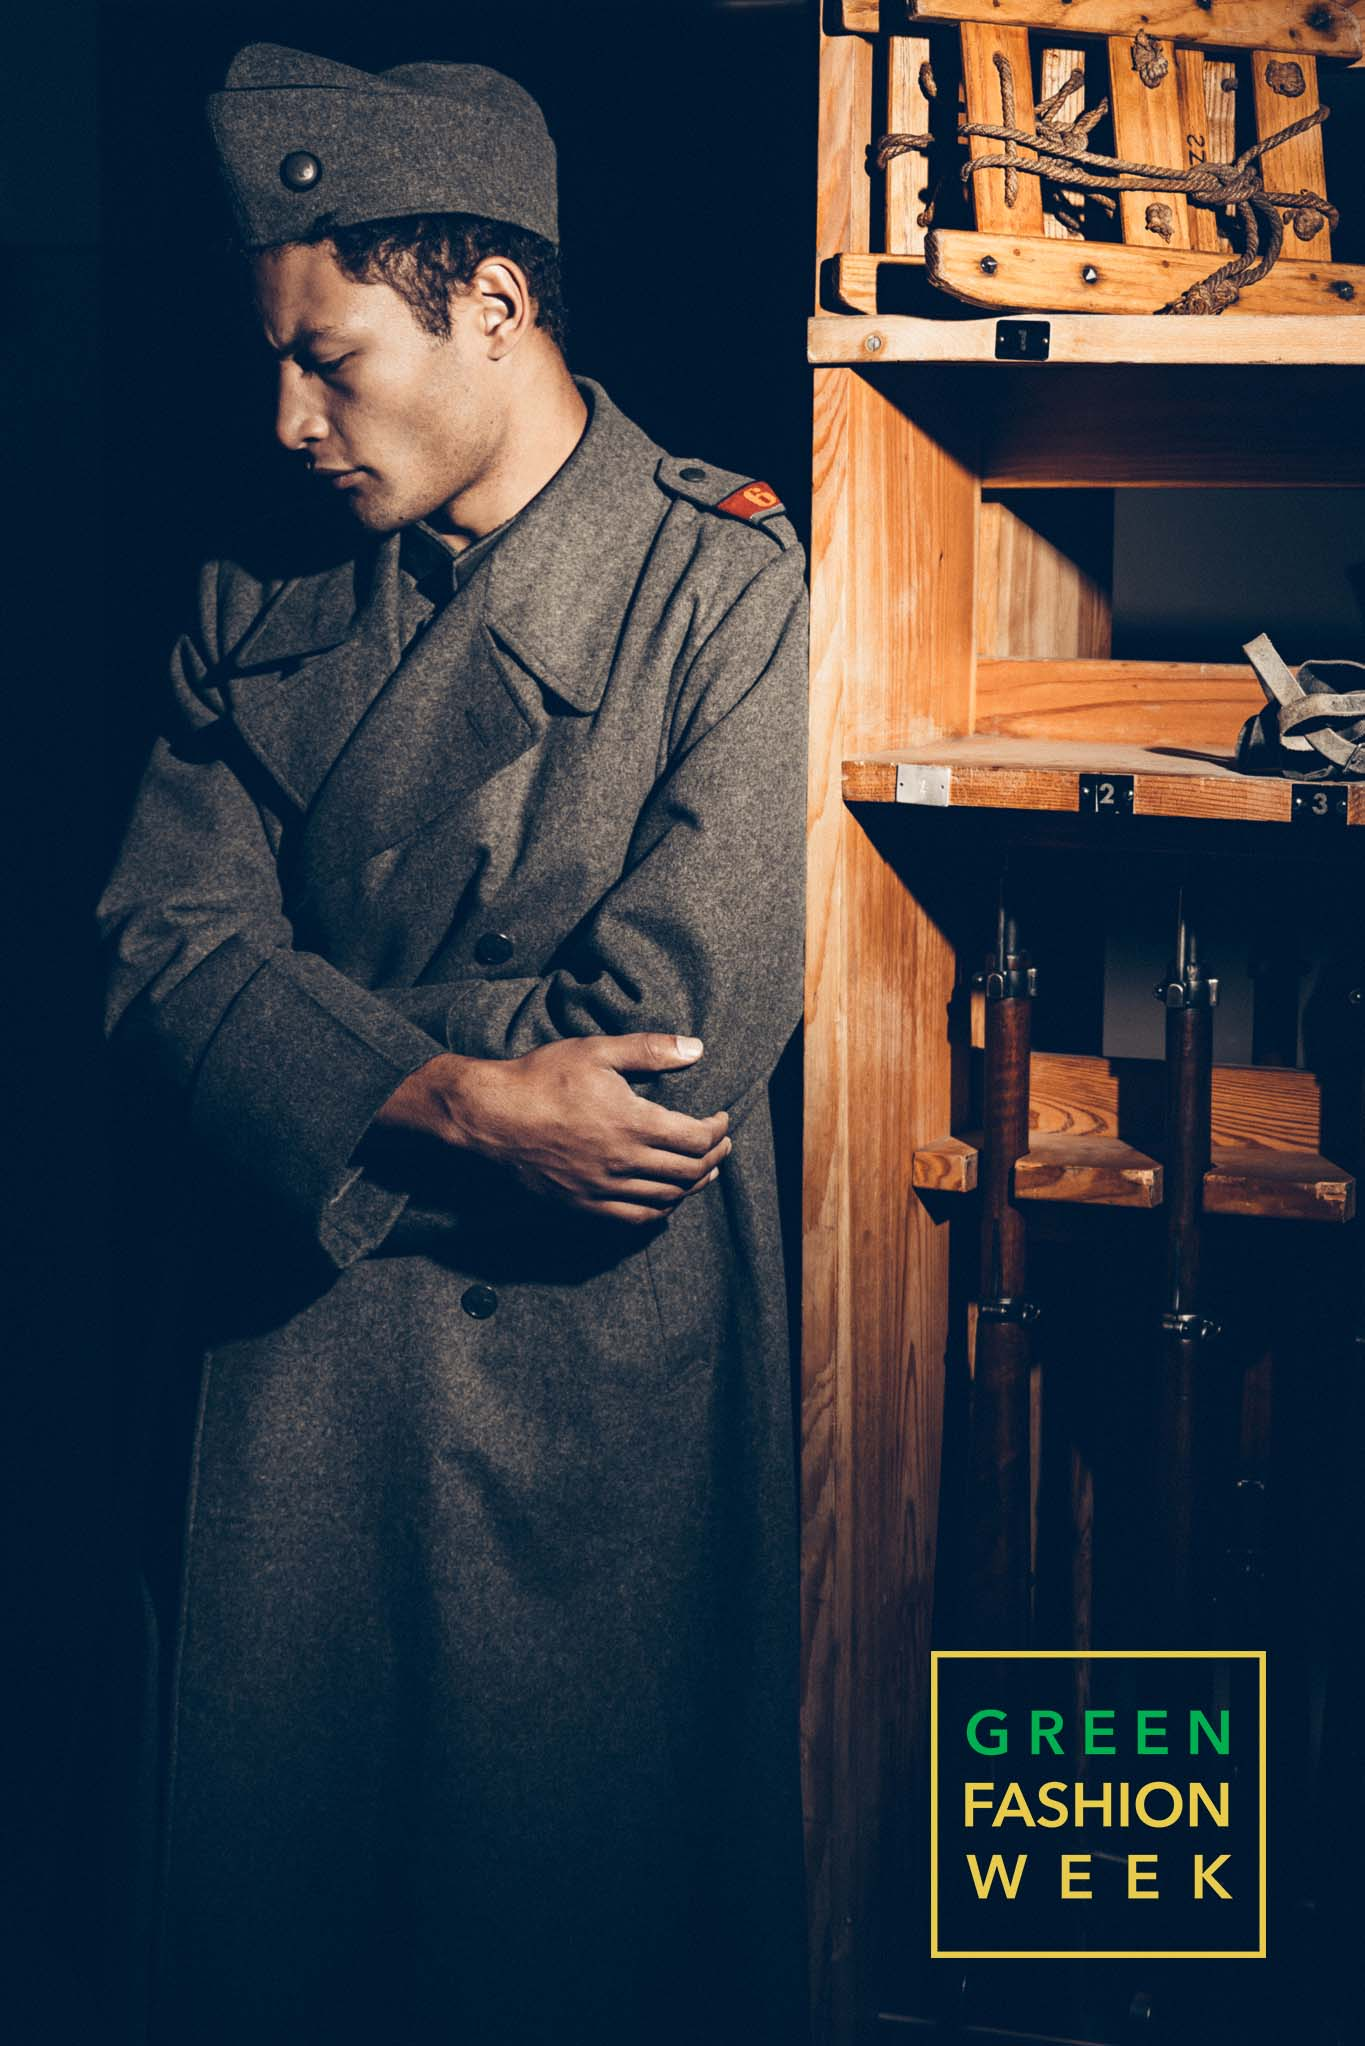 Model Tom Van Hauwaert dressed with Museum's World War II uniforms. Photo Credit: Vittorio La Fata | www.vittoriolafata.it